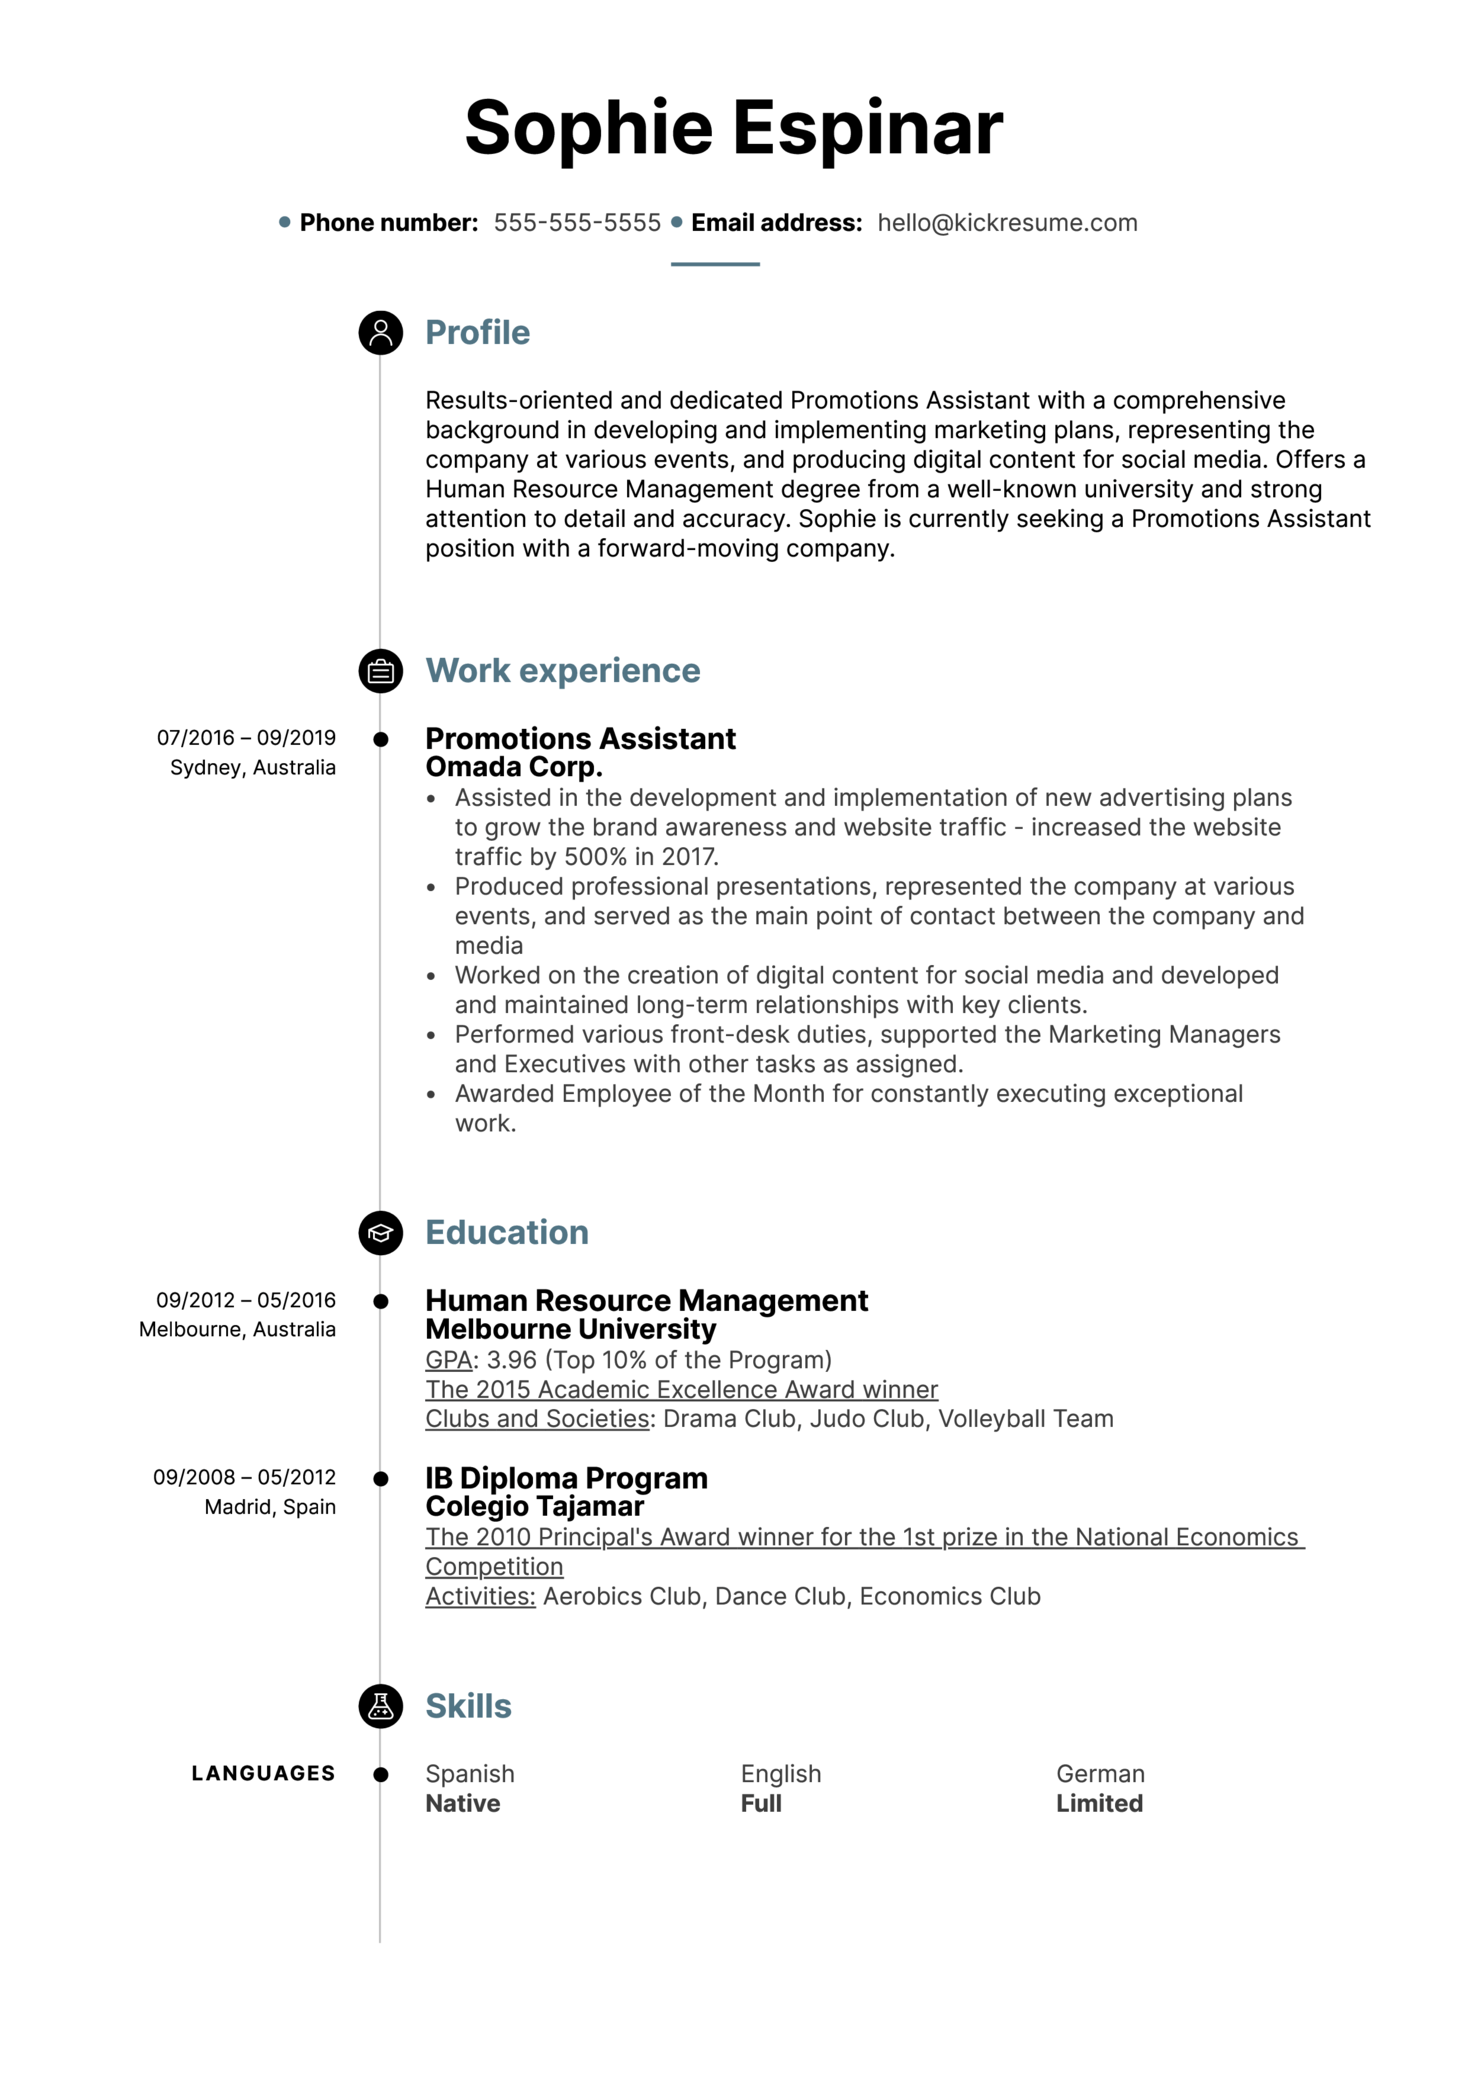 Promotions Assistant Resume Example (Parte 1)